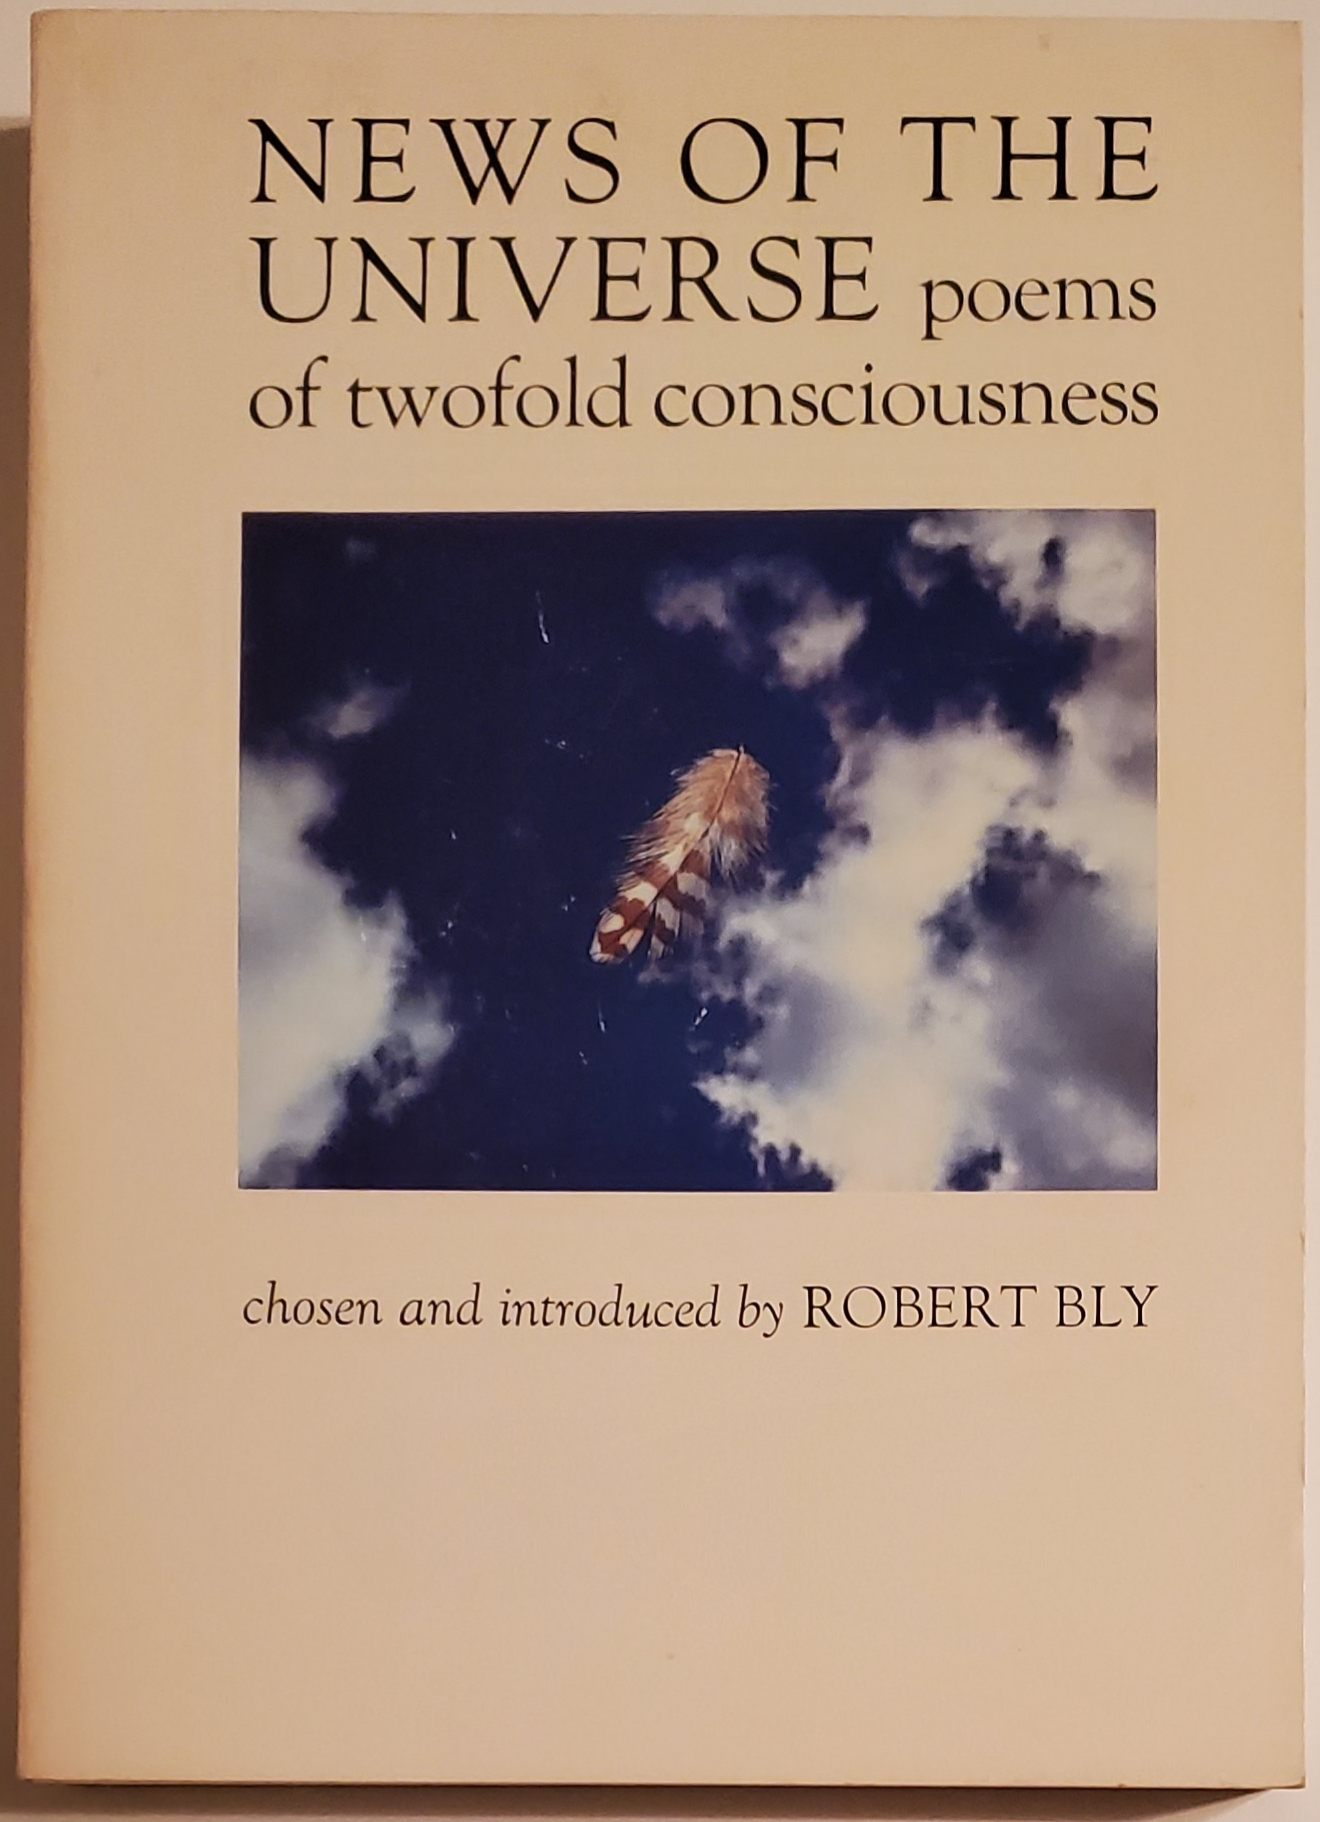 NEWS OF THE UNIVERSE. Poems of Twofold Consciousness. Chosen & Introduced by Robert Bly. Robert Bly.